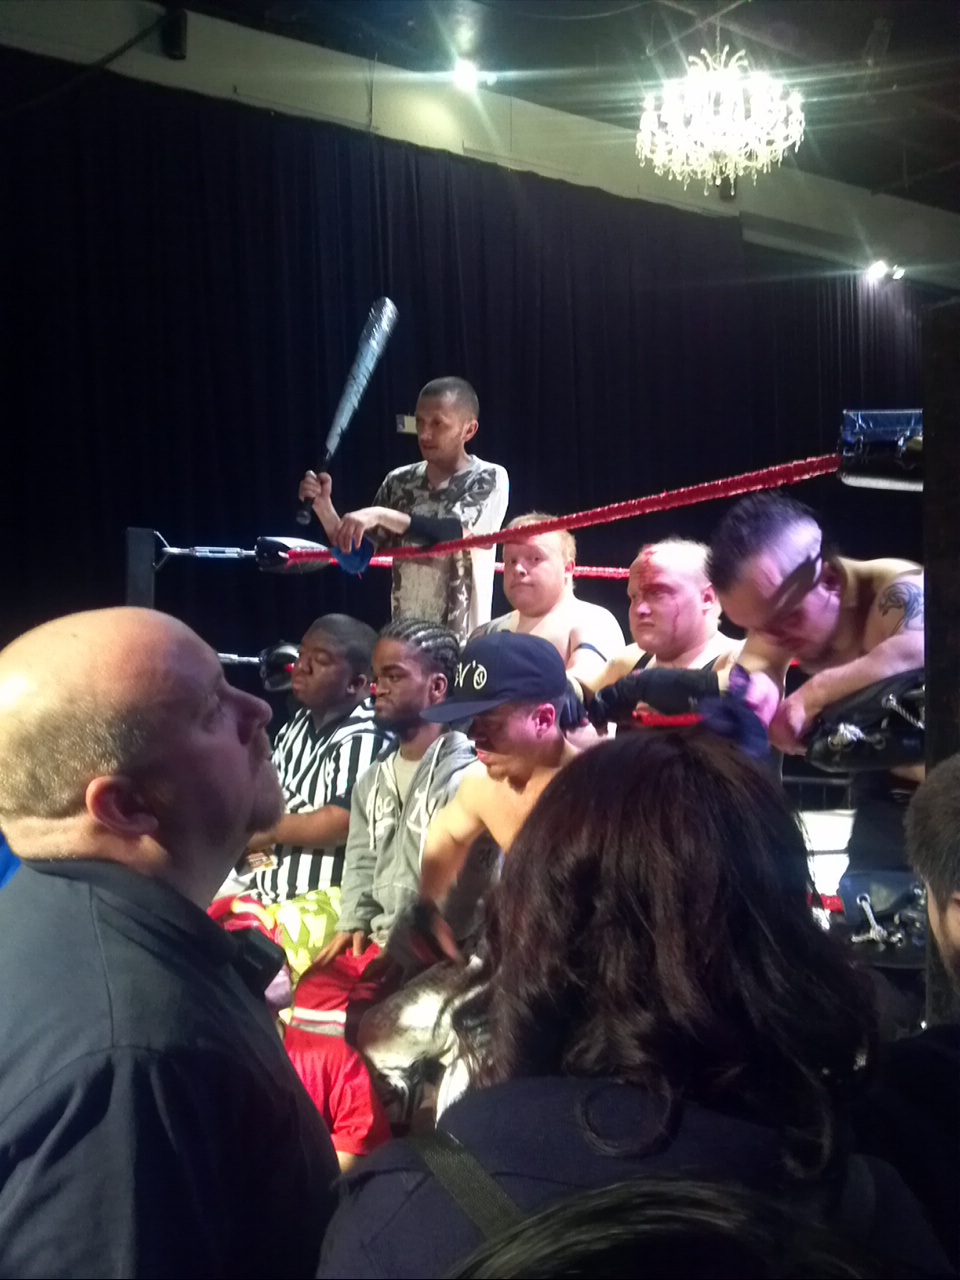 Clockwise from top: Skinny Timmy, Baby Jesus, Lil Show, Canadian, Steve-O, King Midget, and the ref